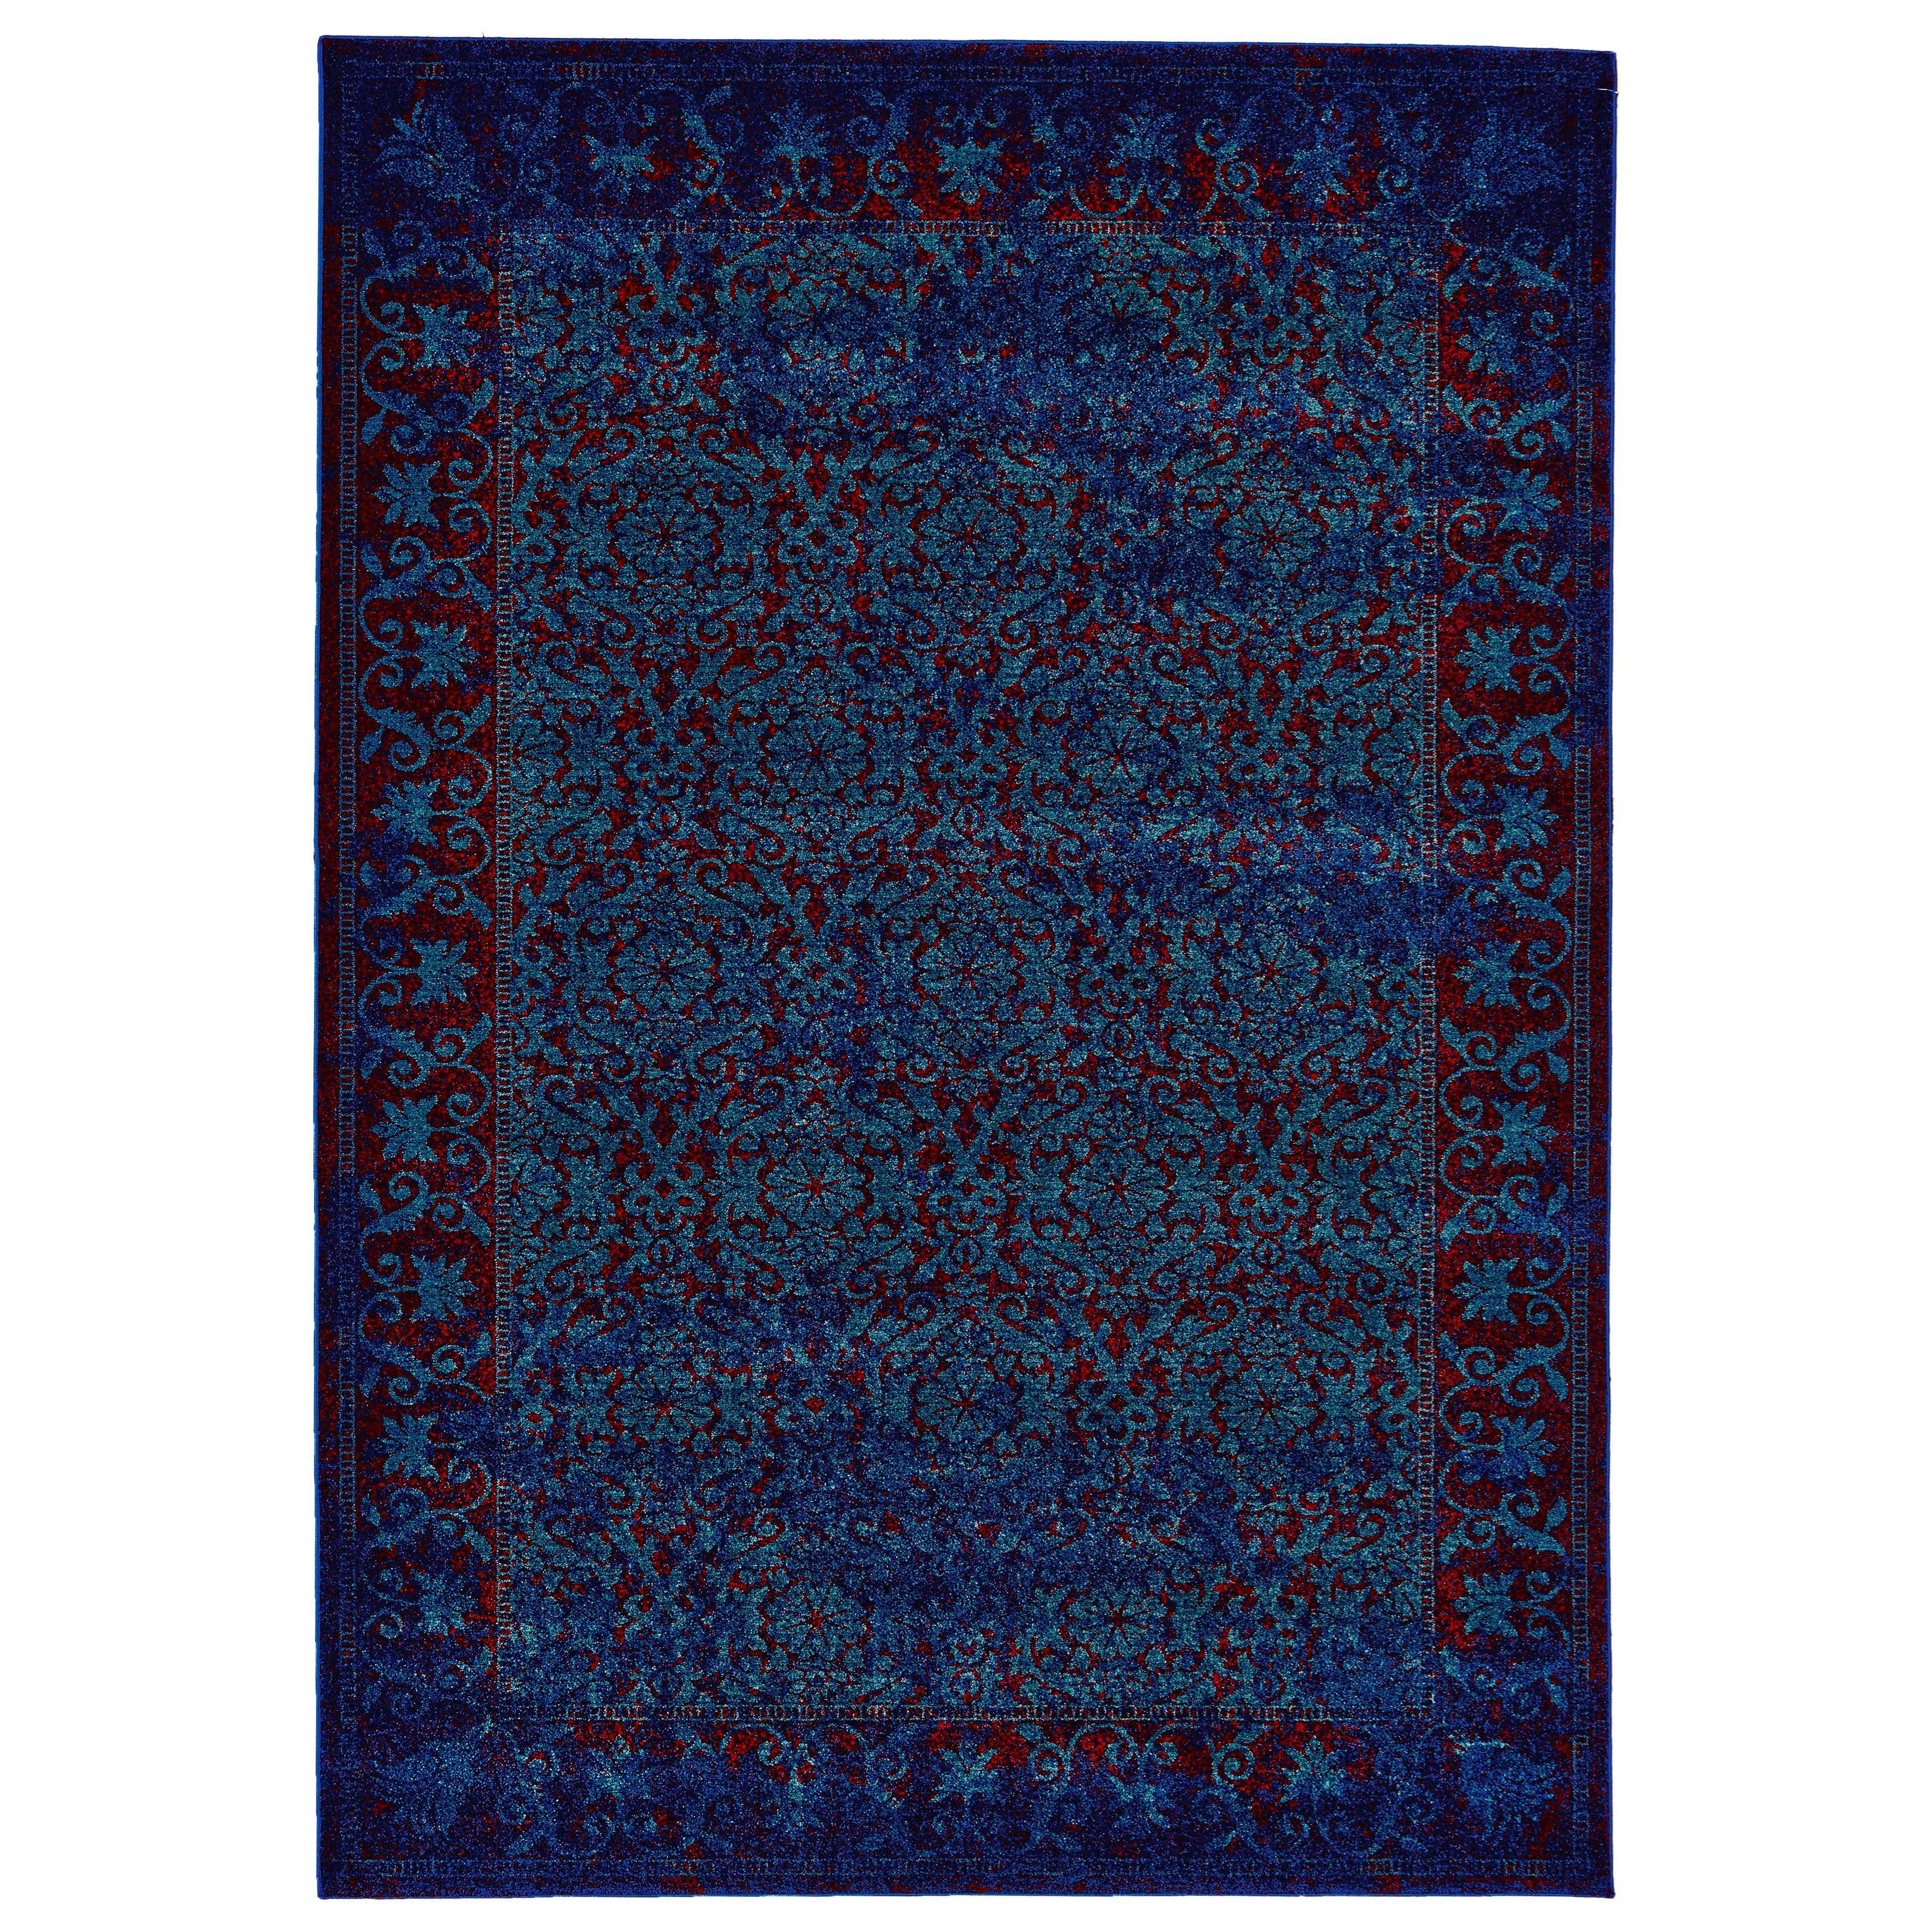 Archean Azure 5' x 8' Area Rug by Feizy Rugs at Sprintz Furniture